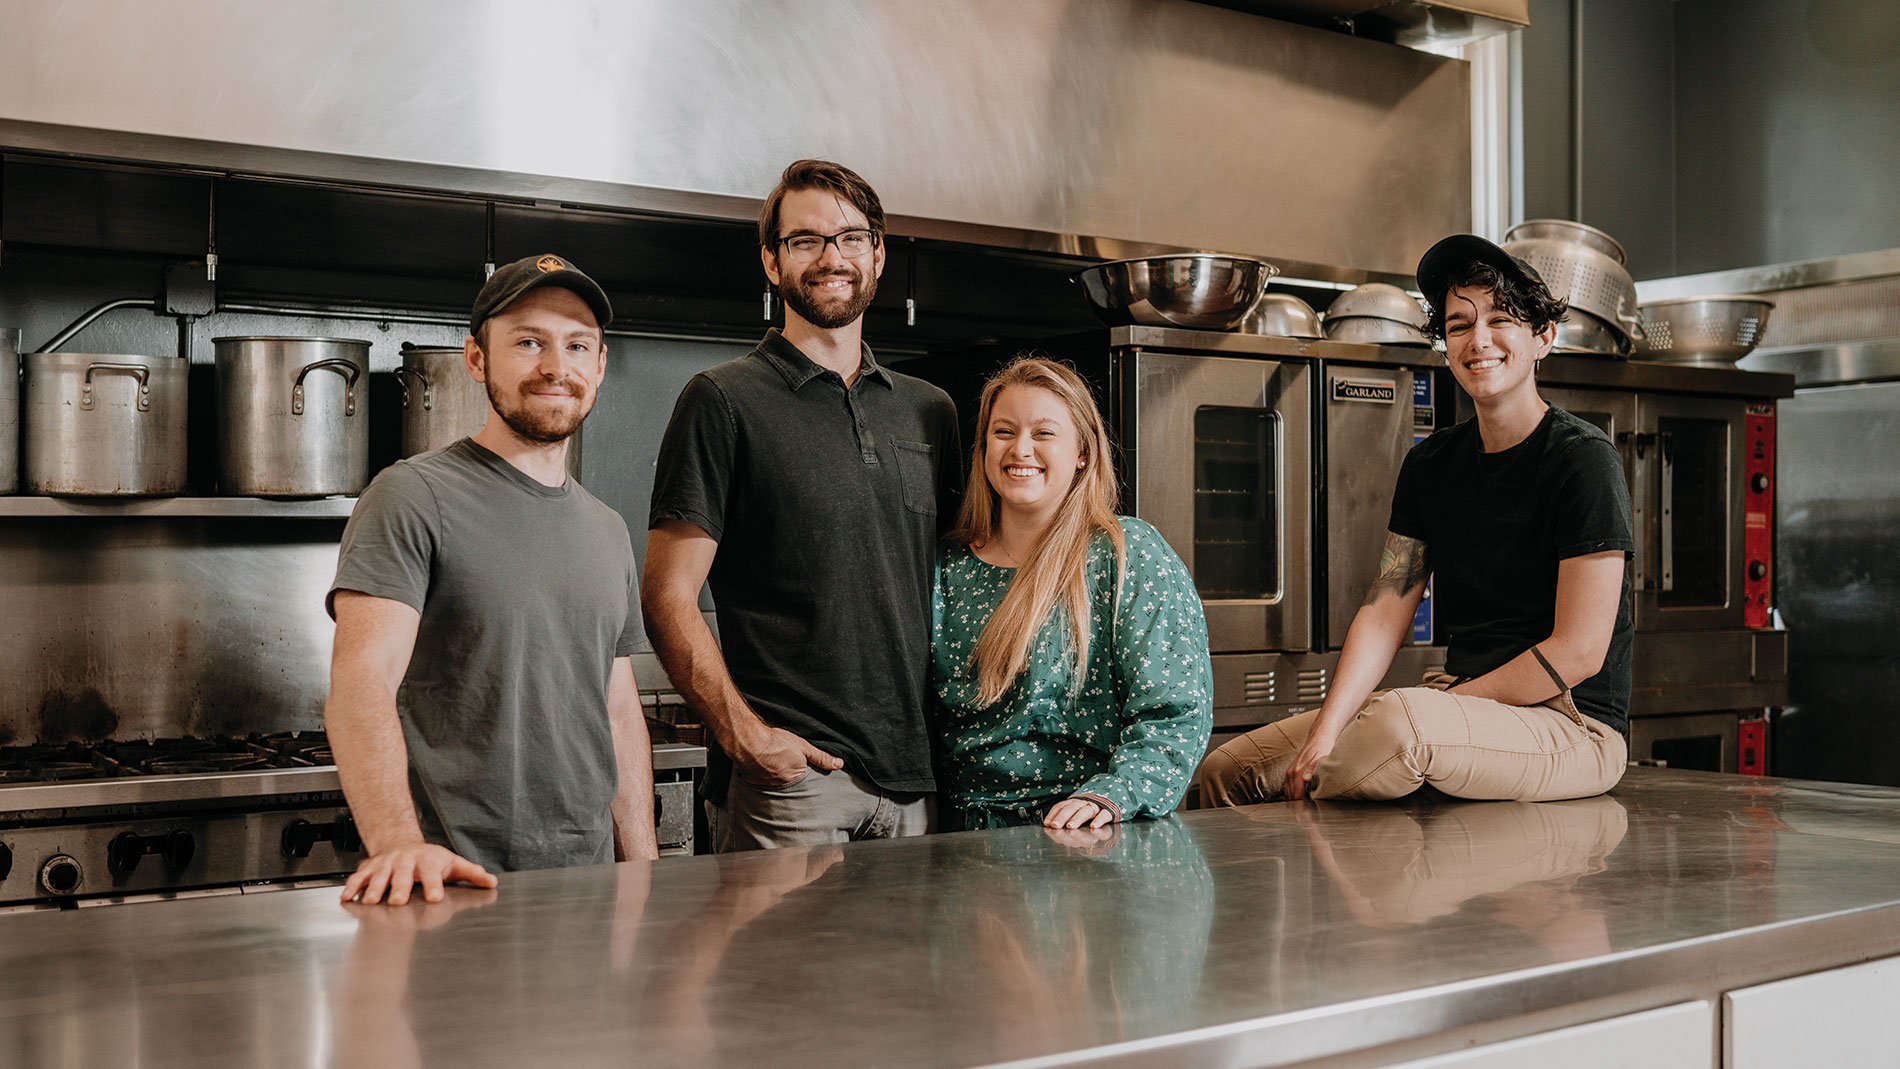 A sustainable future for St. Louis food producers